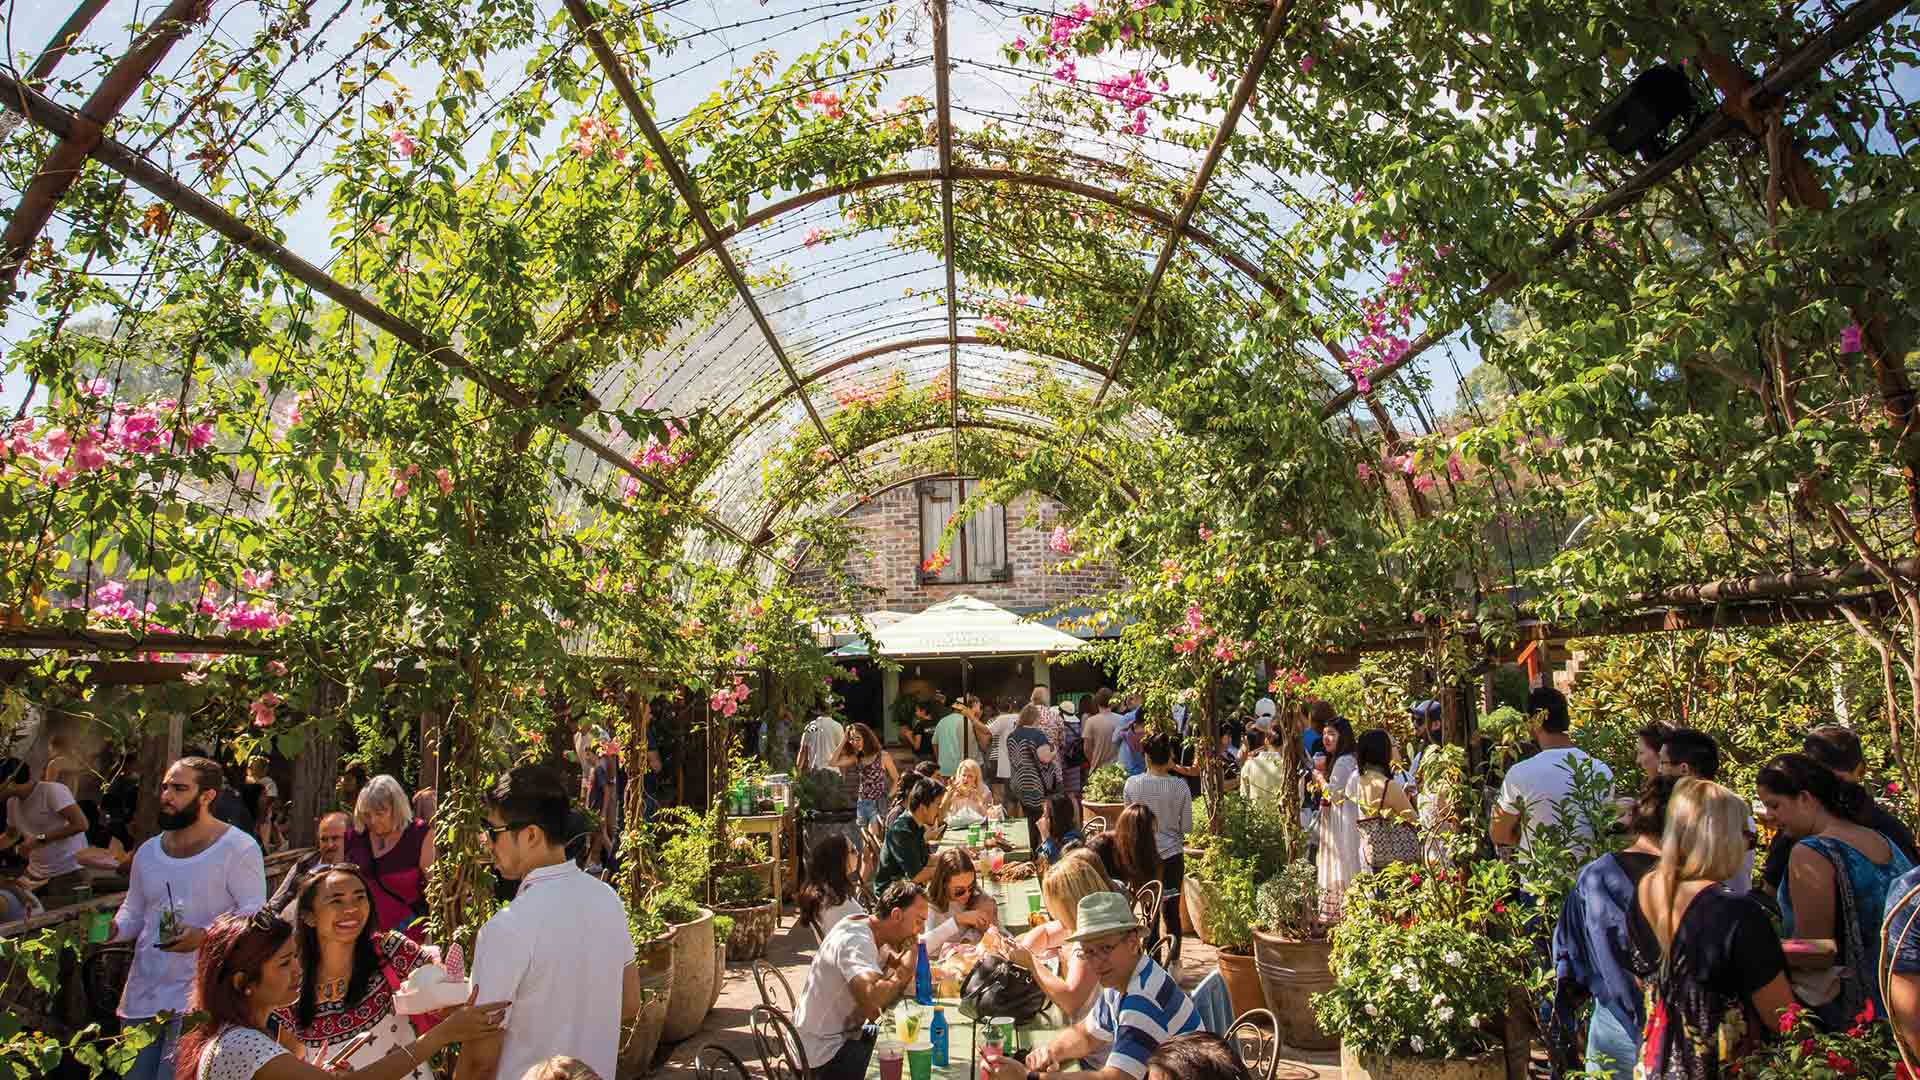 Alexandria rosebery and green square day and night guide - Mostardi s newtown square garden ...